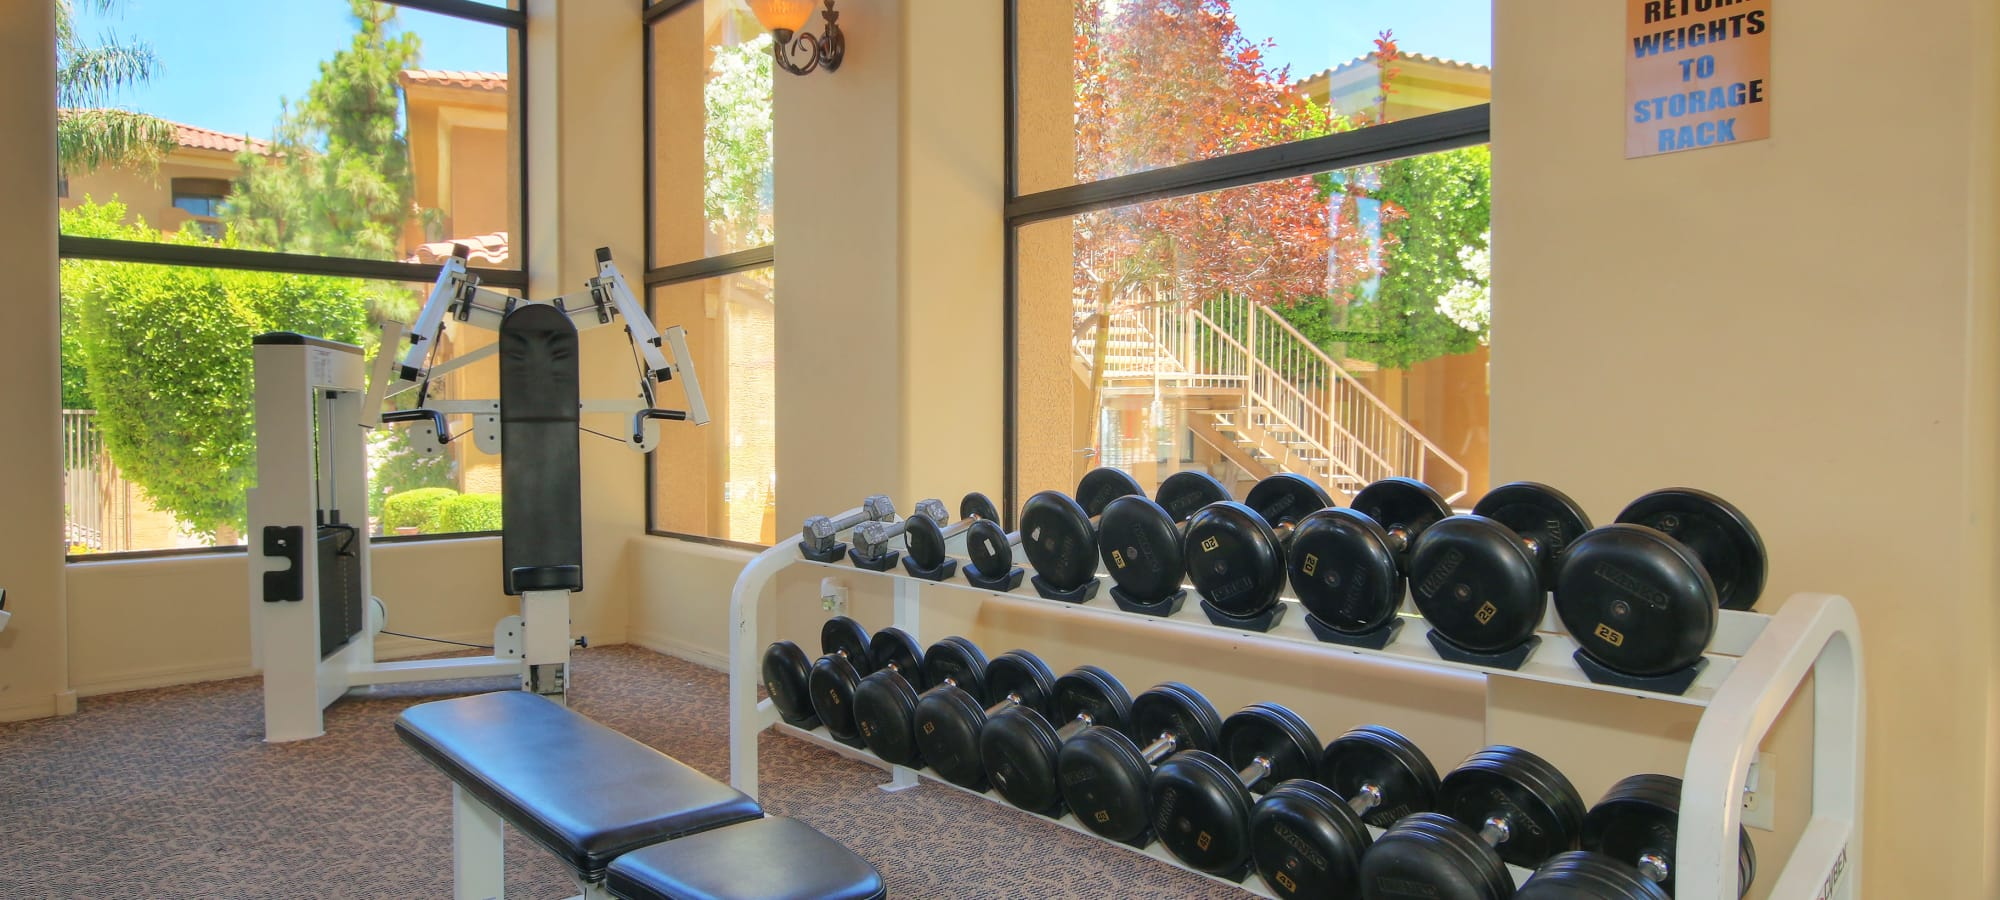 Weights inside the fitness center at The Retreat at the Raven in Phoenix, Arizona